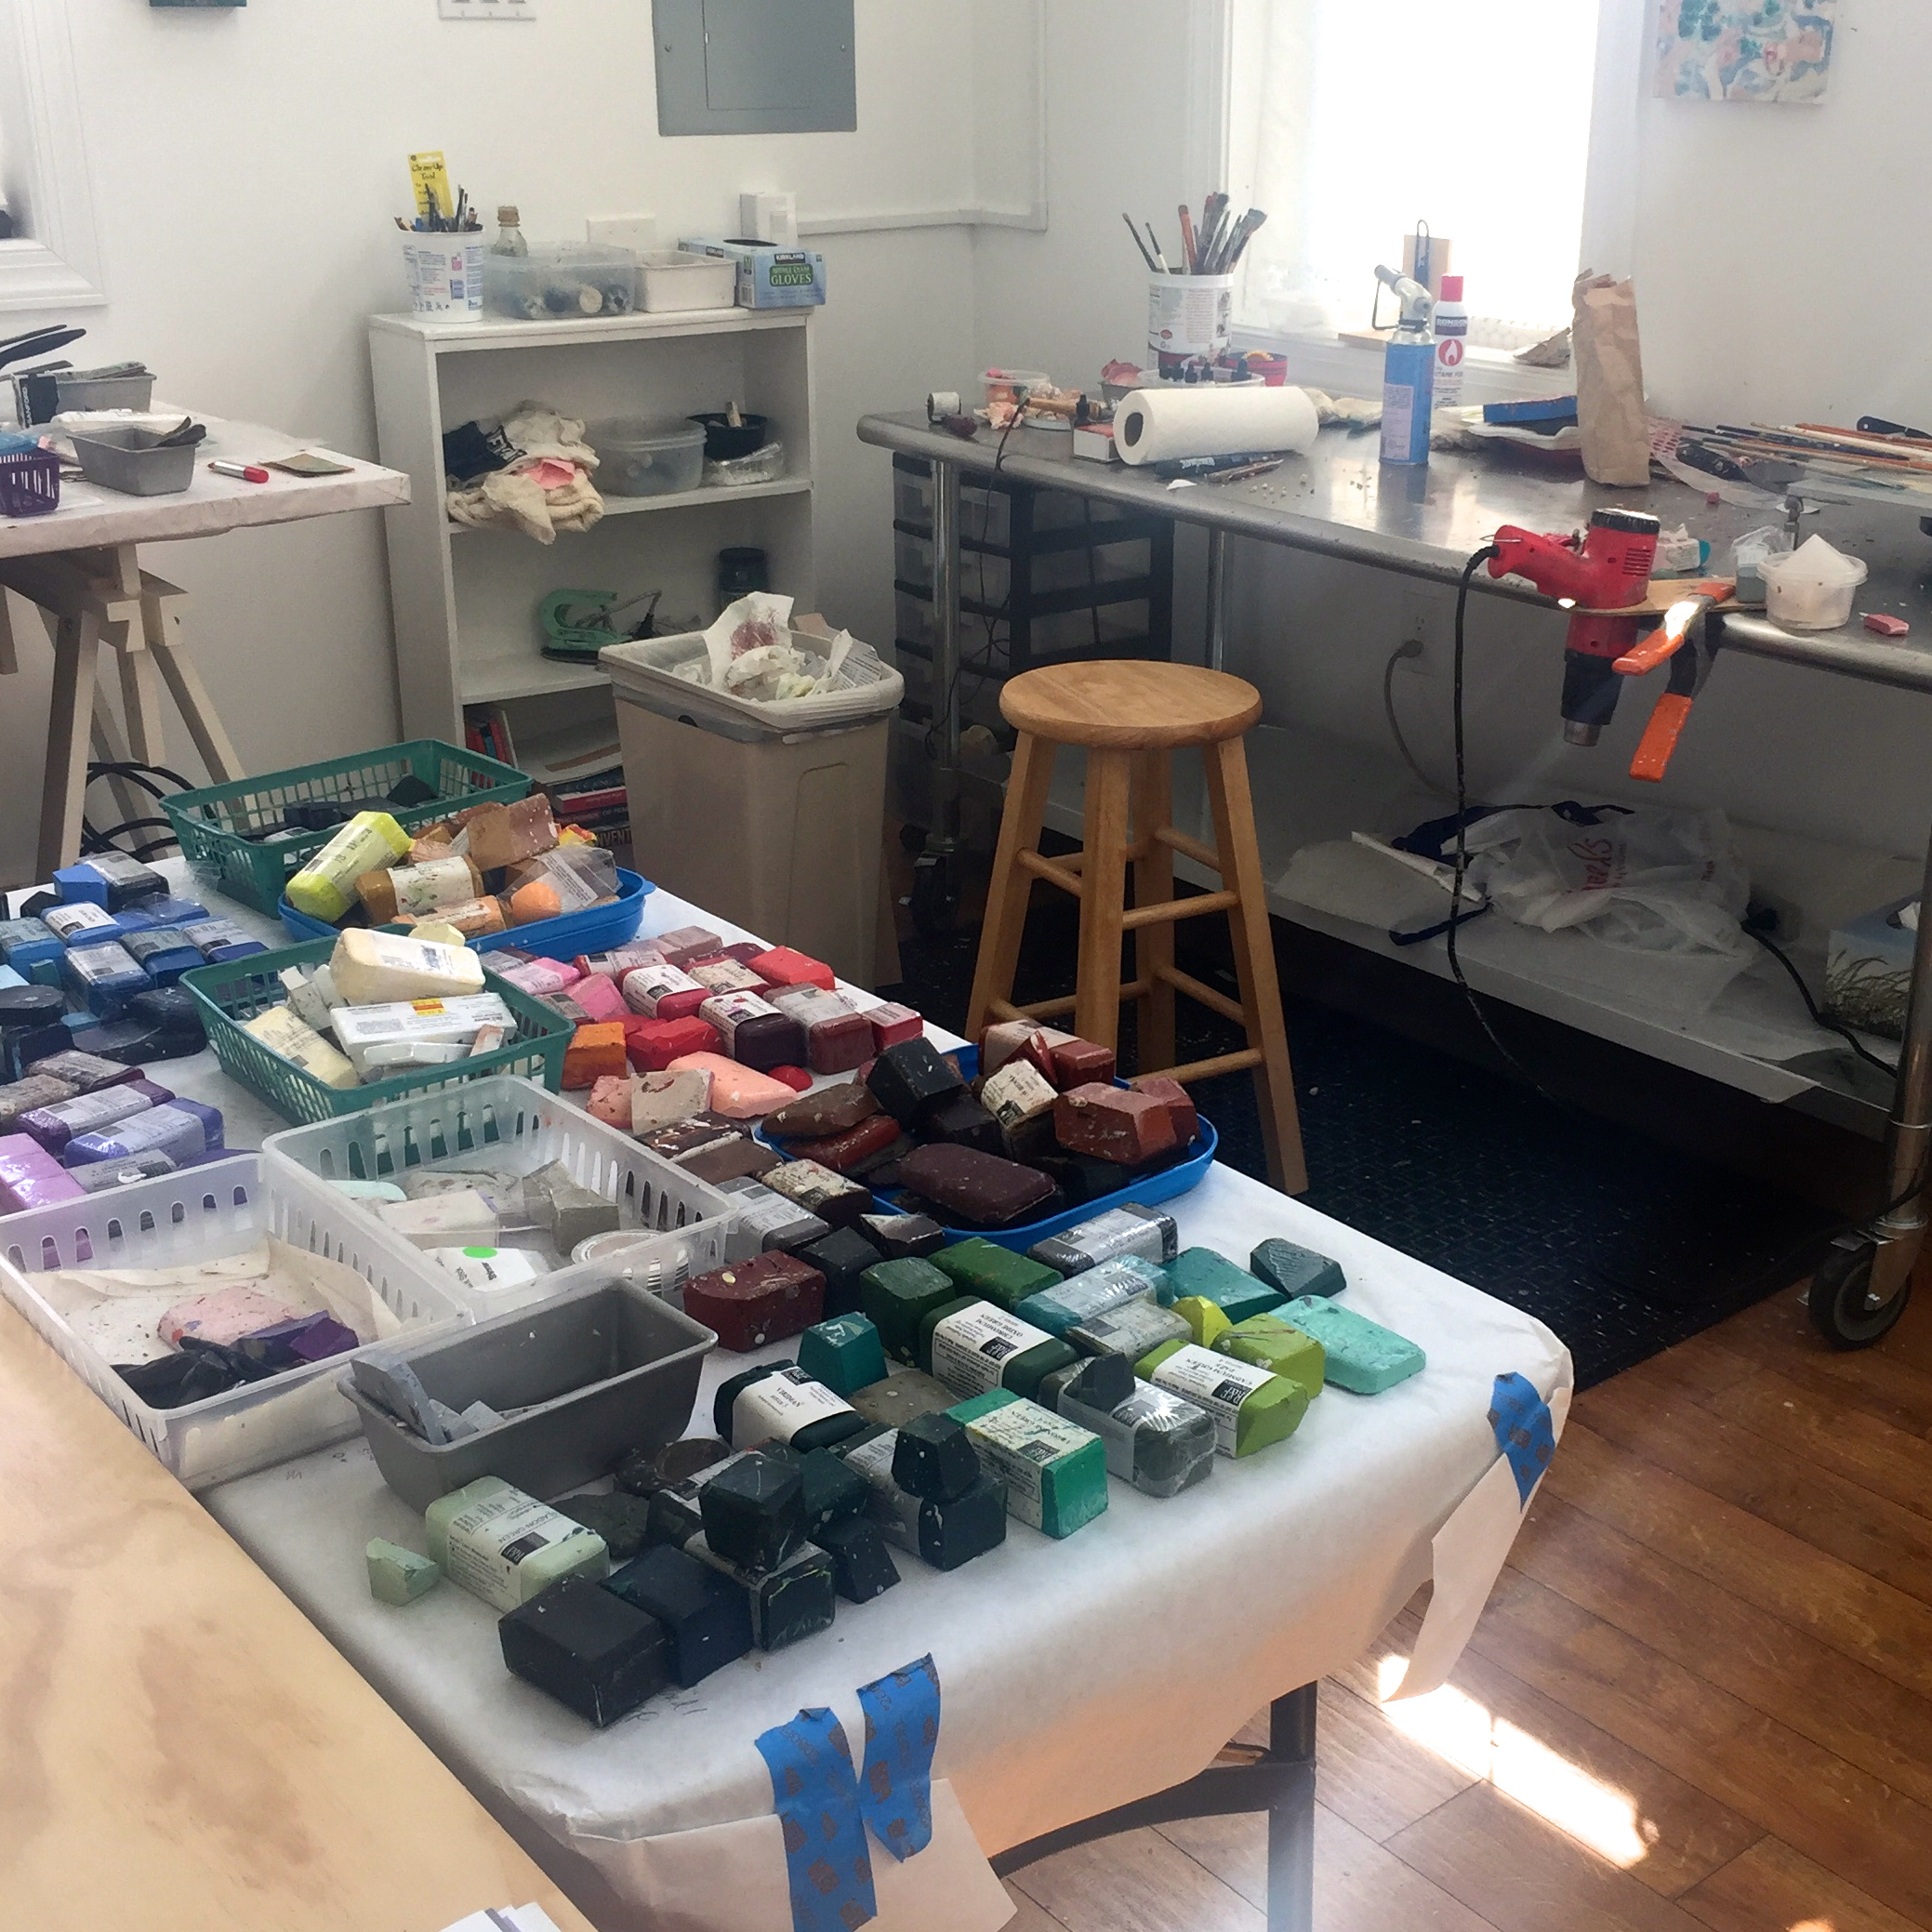 This feels like a candy store! I came home from the Encaustic Conference with some needed new paints, and laid out everything I had. More to come, since I won a raffle prize from Enkaustikos!